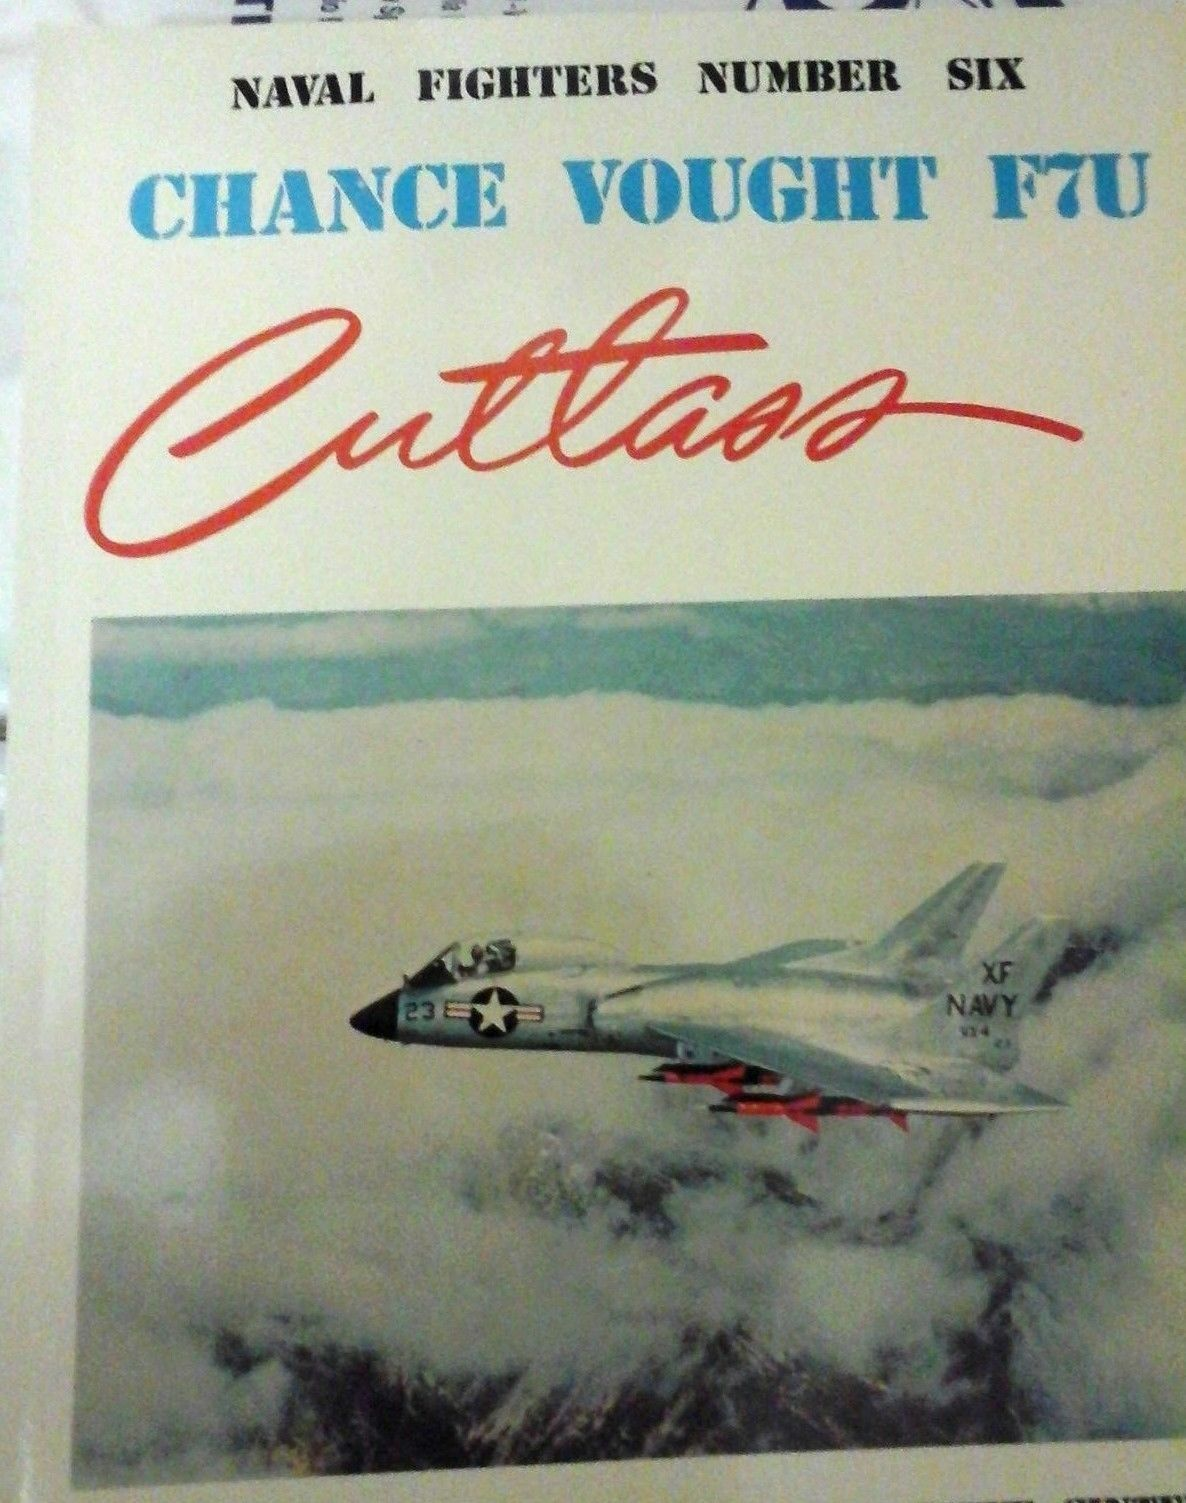 Chance Vought Aircraft f7u Cutlass-Naval Fighters n.6 - by Ginter Steve - 1st Edition (1982)